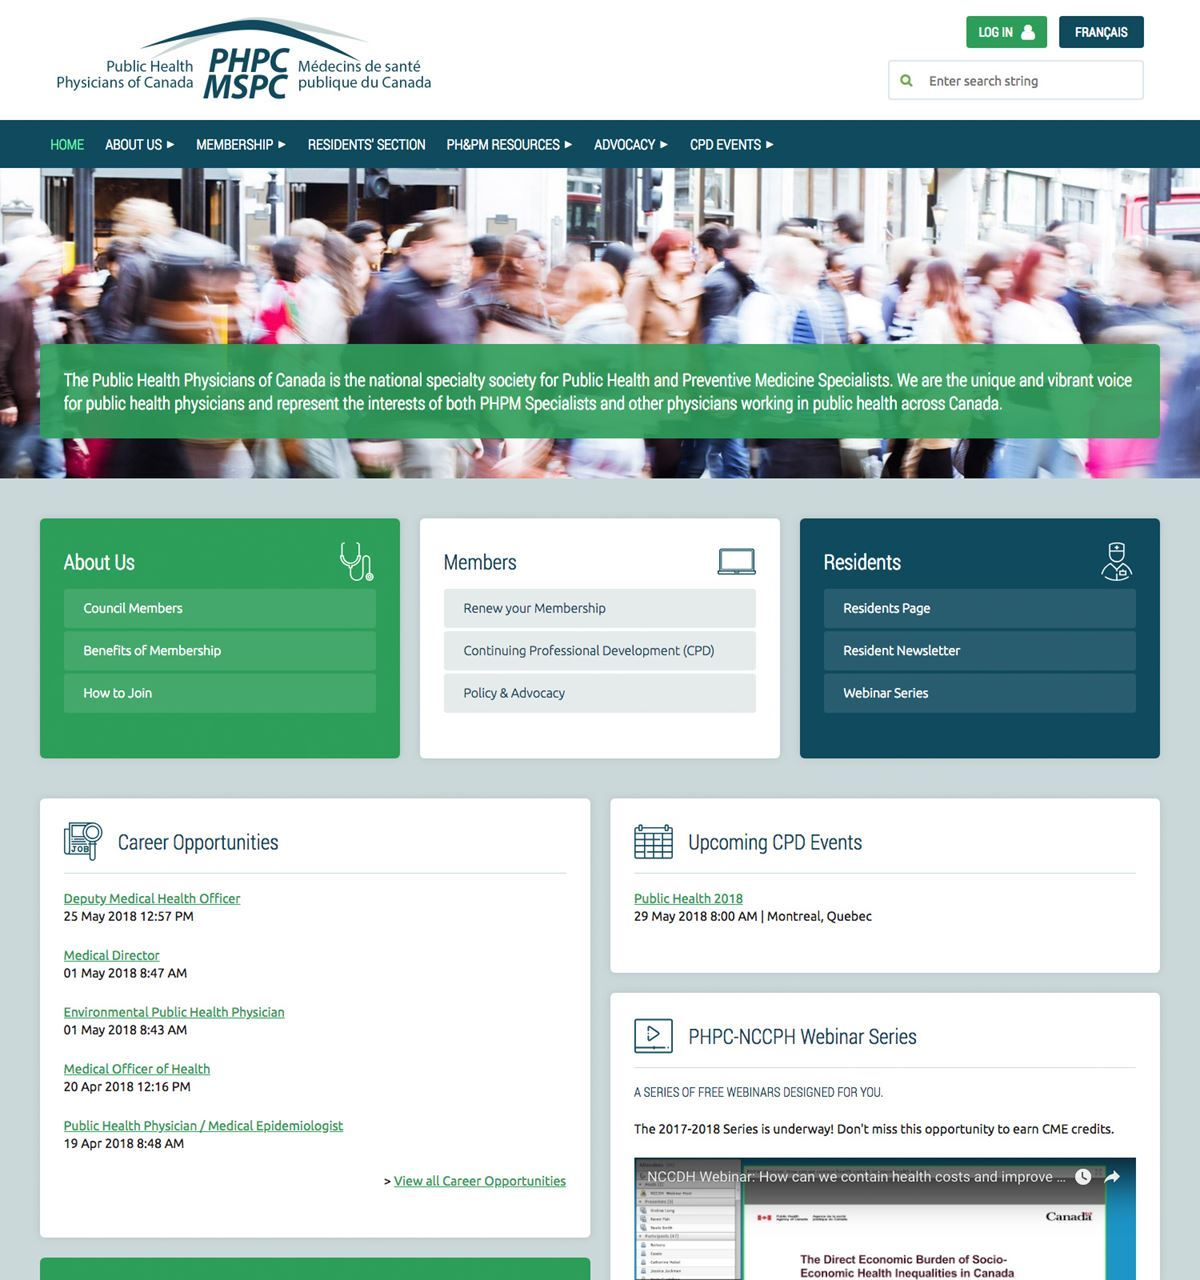 Public Health Physicians of Canada Website - After